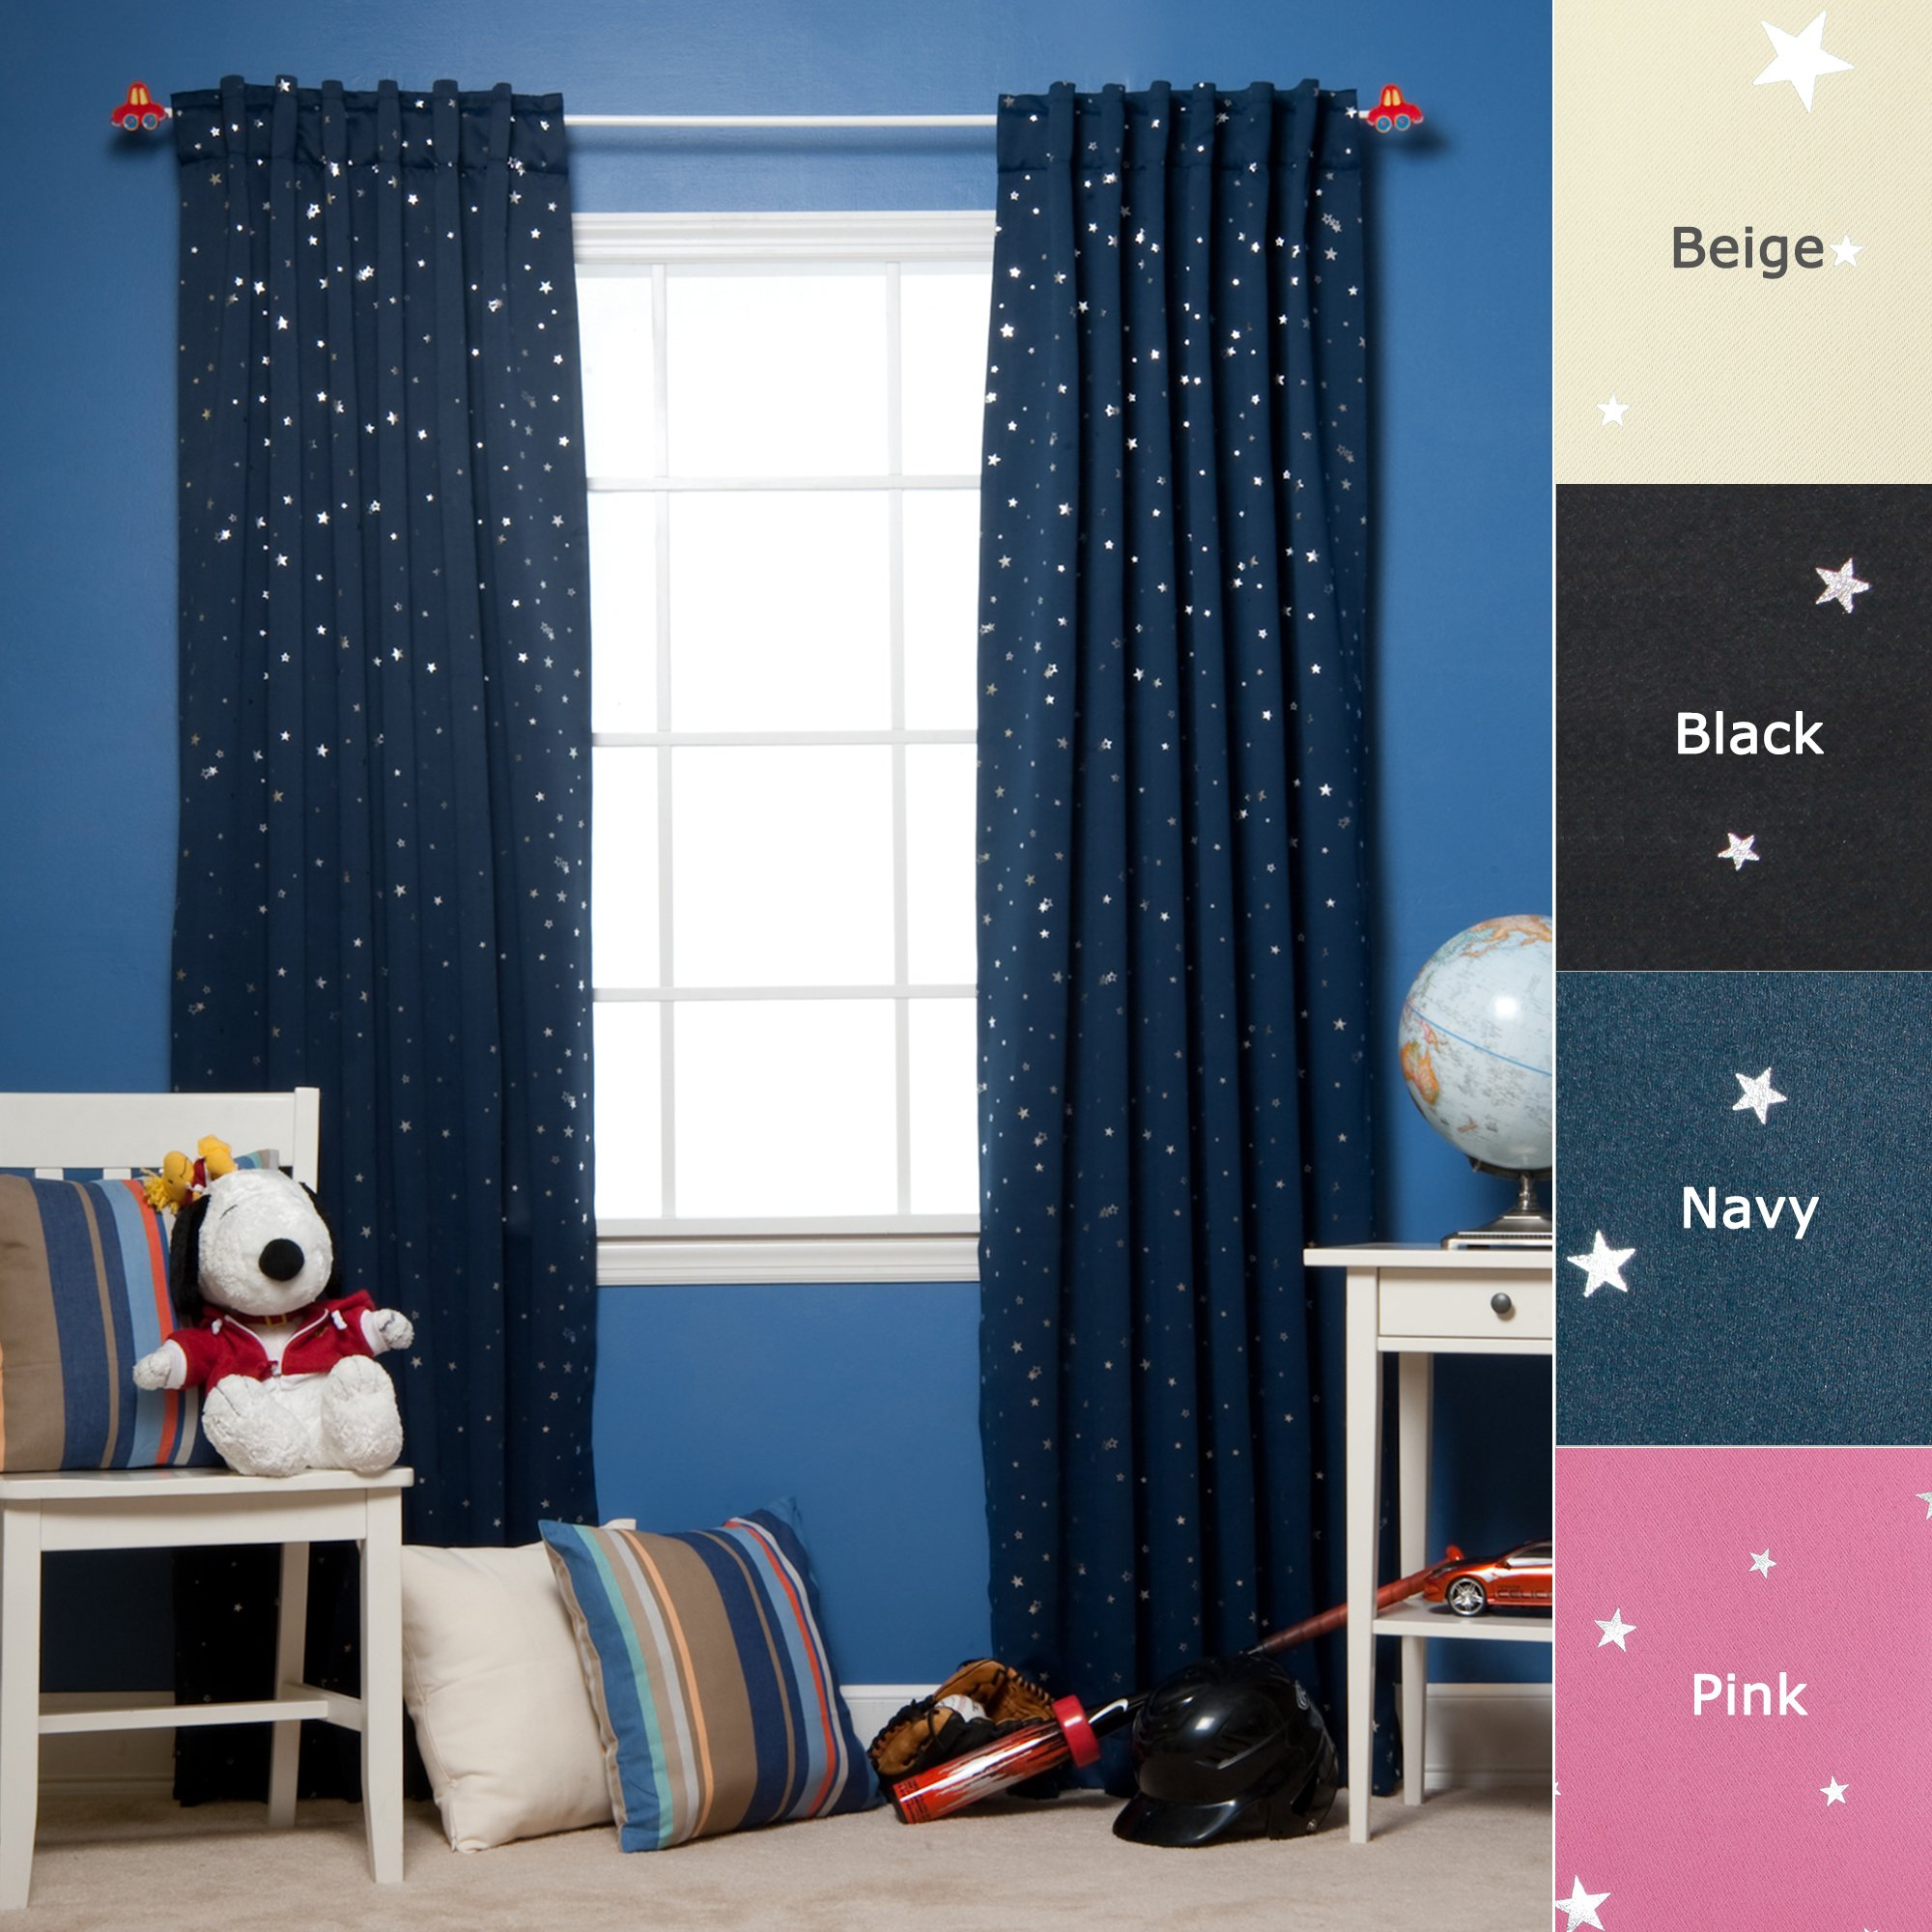 Thermal Insulated Curtains | Insulated Patio Door Drapes | Thermal Bedroom Curtains